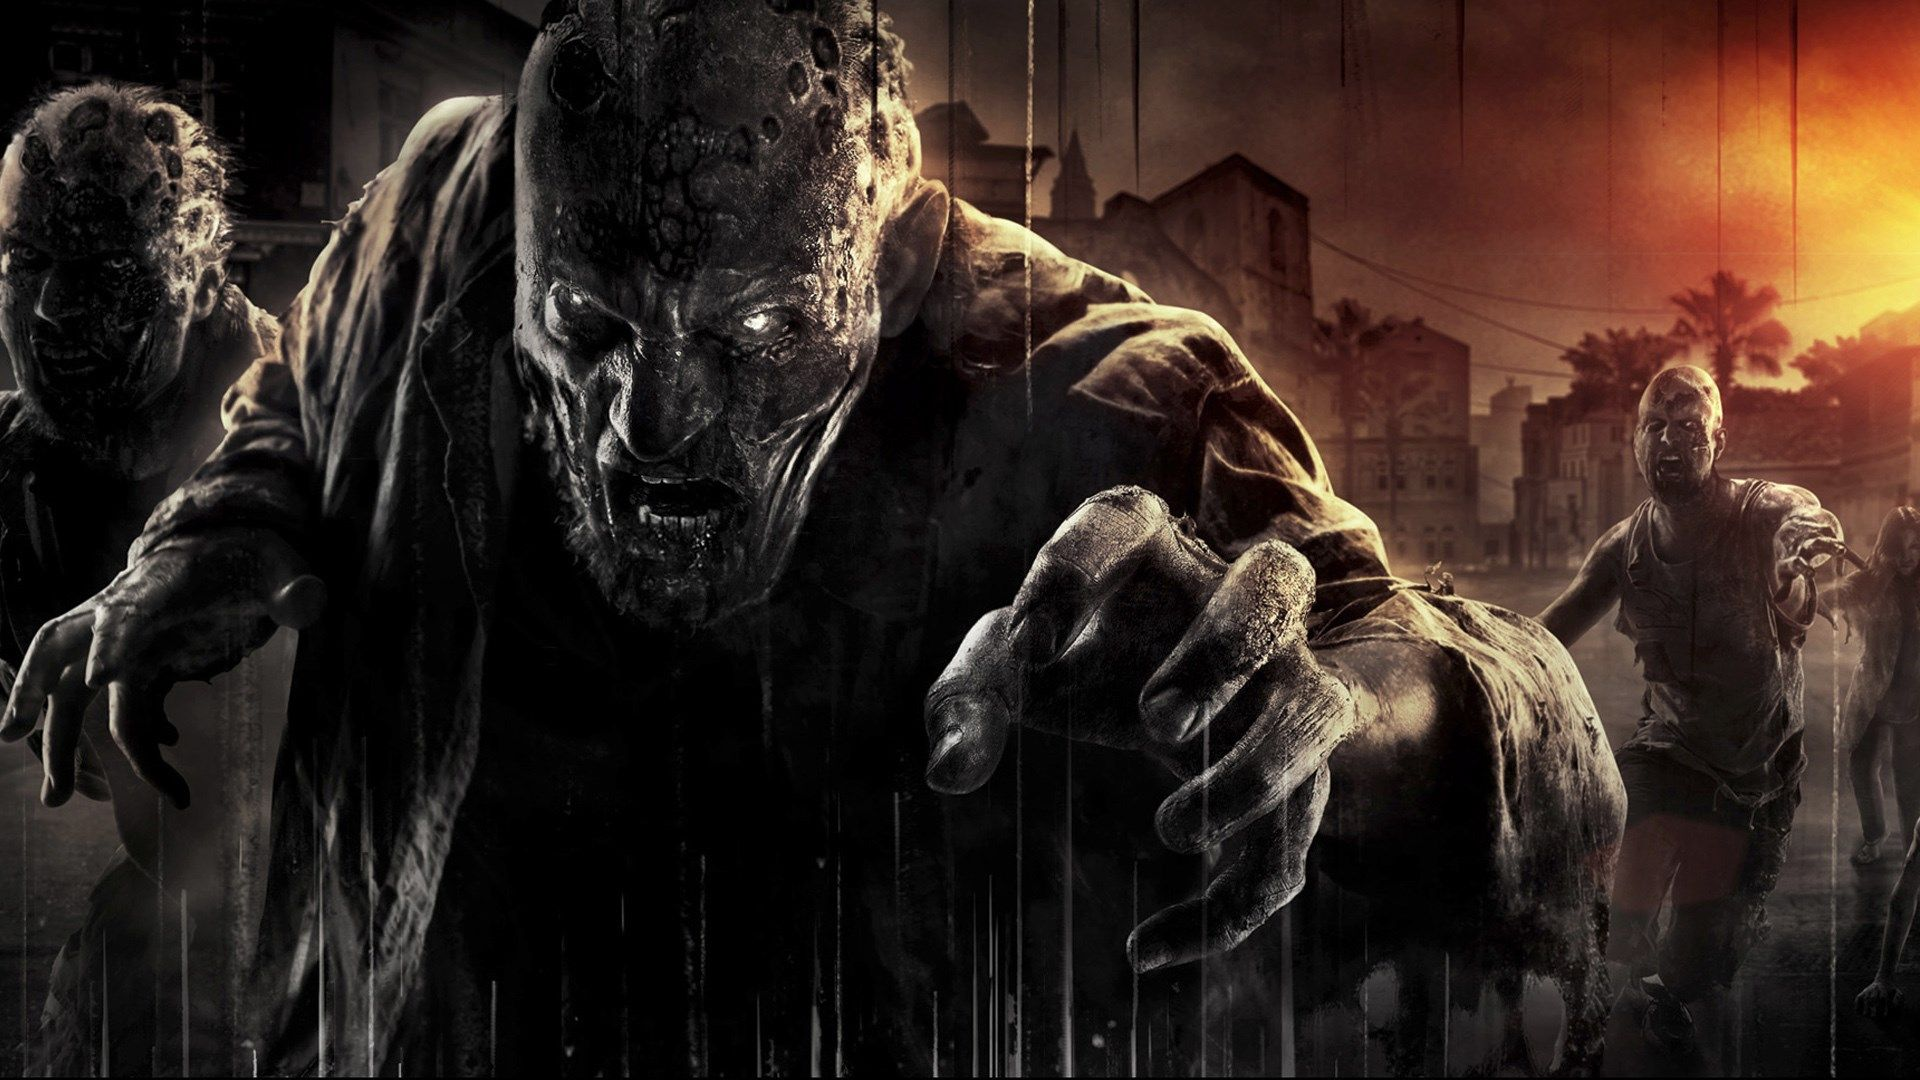 1920x1080 High Resolution Wallpapers Widescreen Dying Light